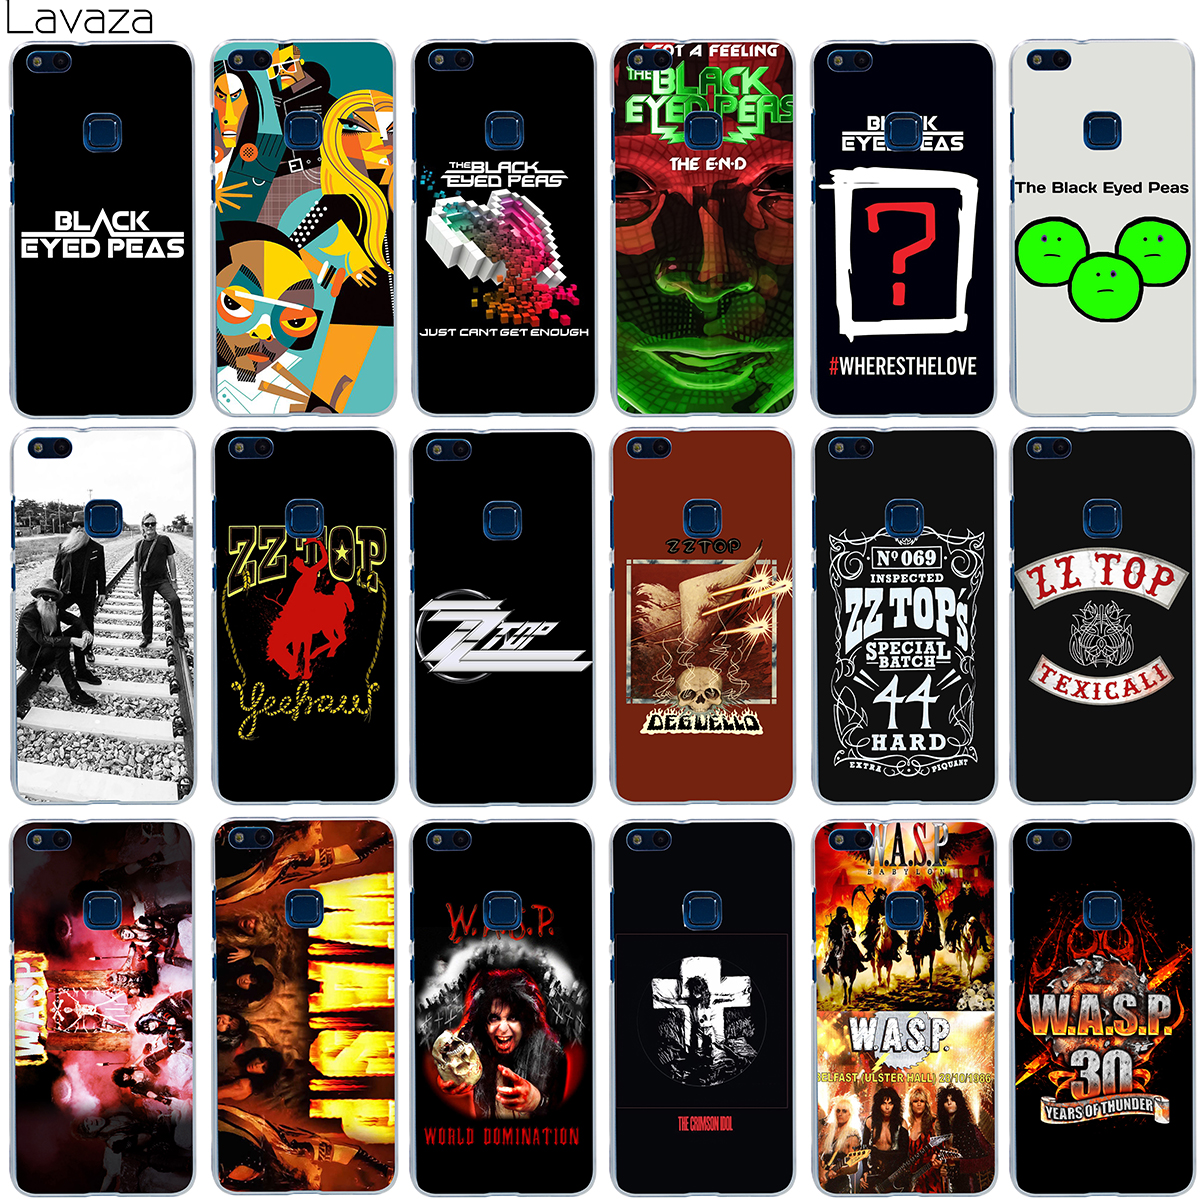 Lavaza The Black Eyed Peas ZZ Top W.A.S.P Band Case for Huawei Honor Y3 Y5 ii Y6 Y7 6 6A 7X 8 9 Lite 2017